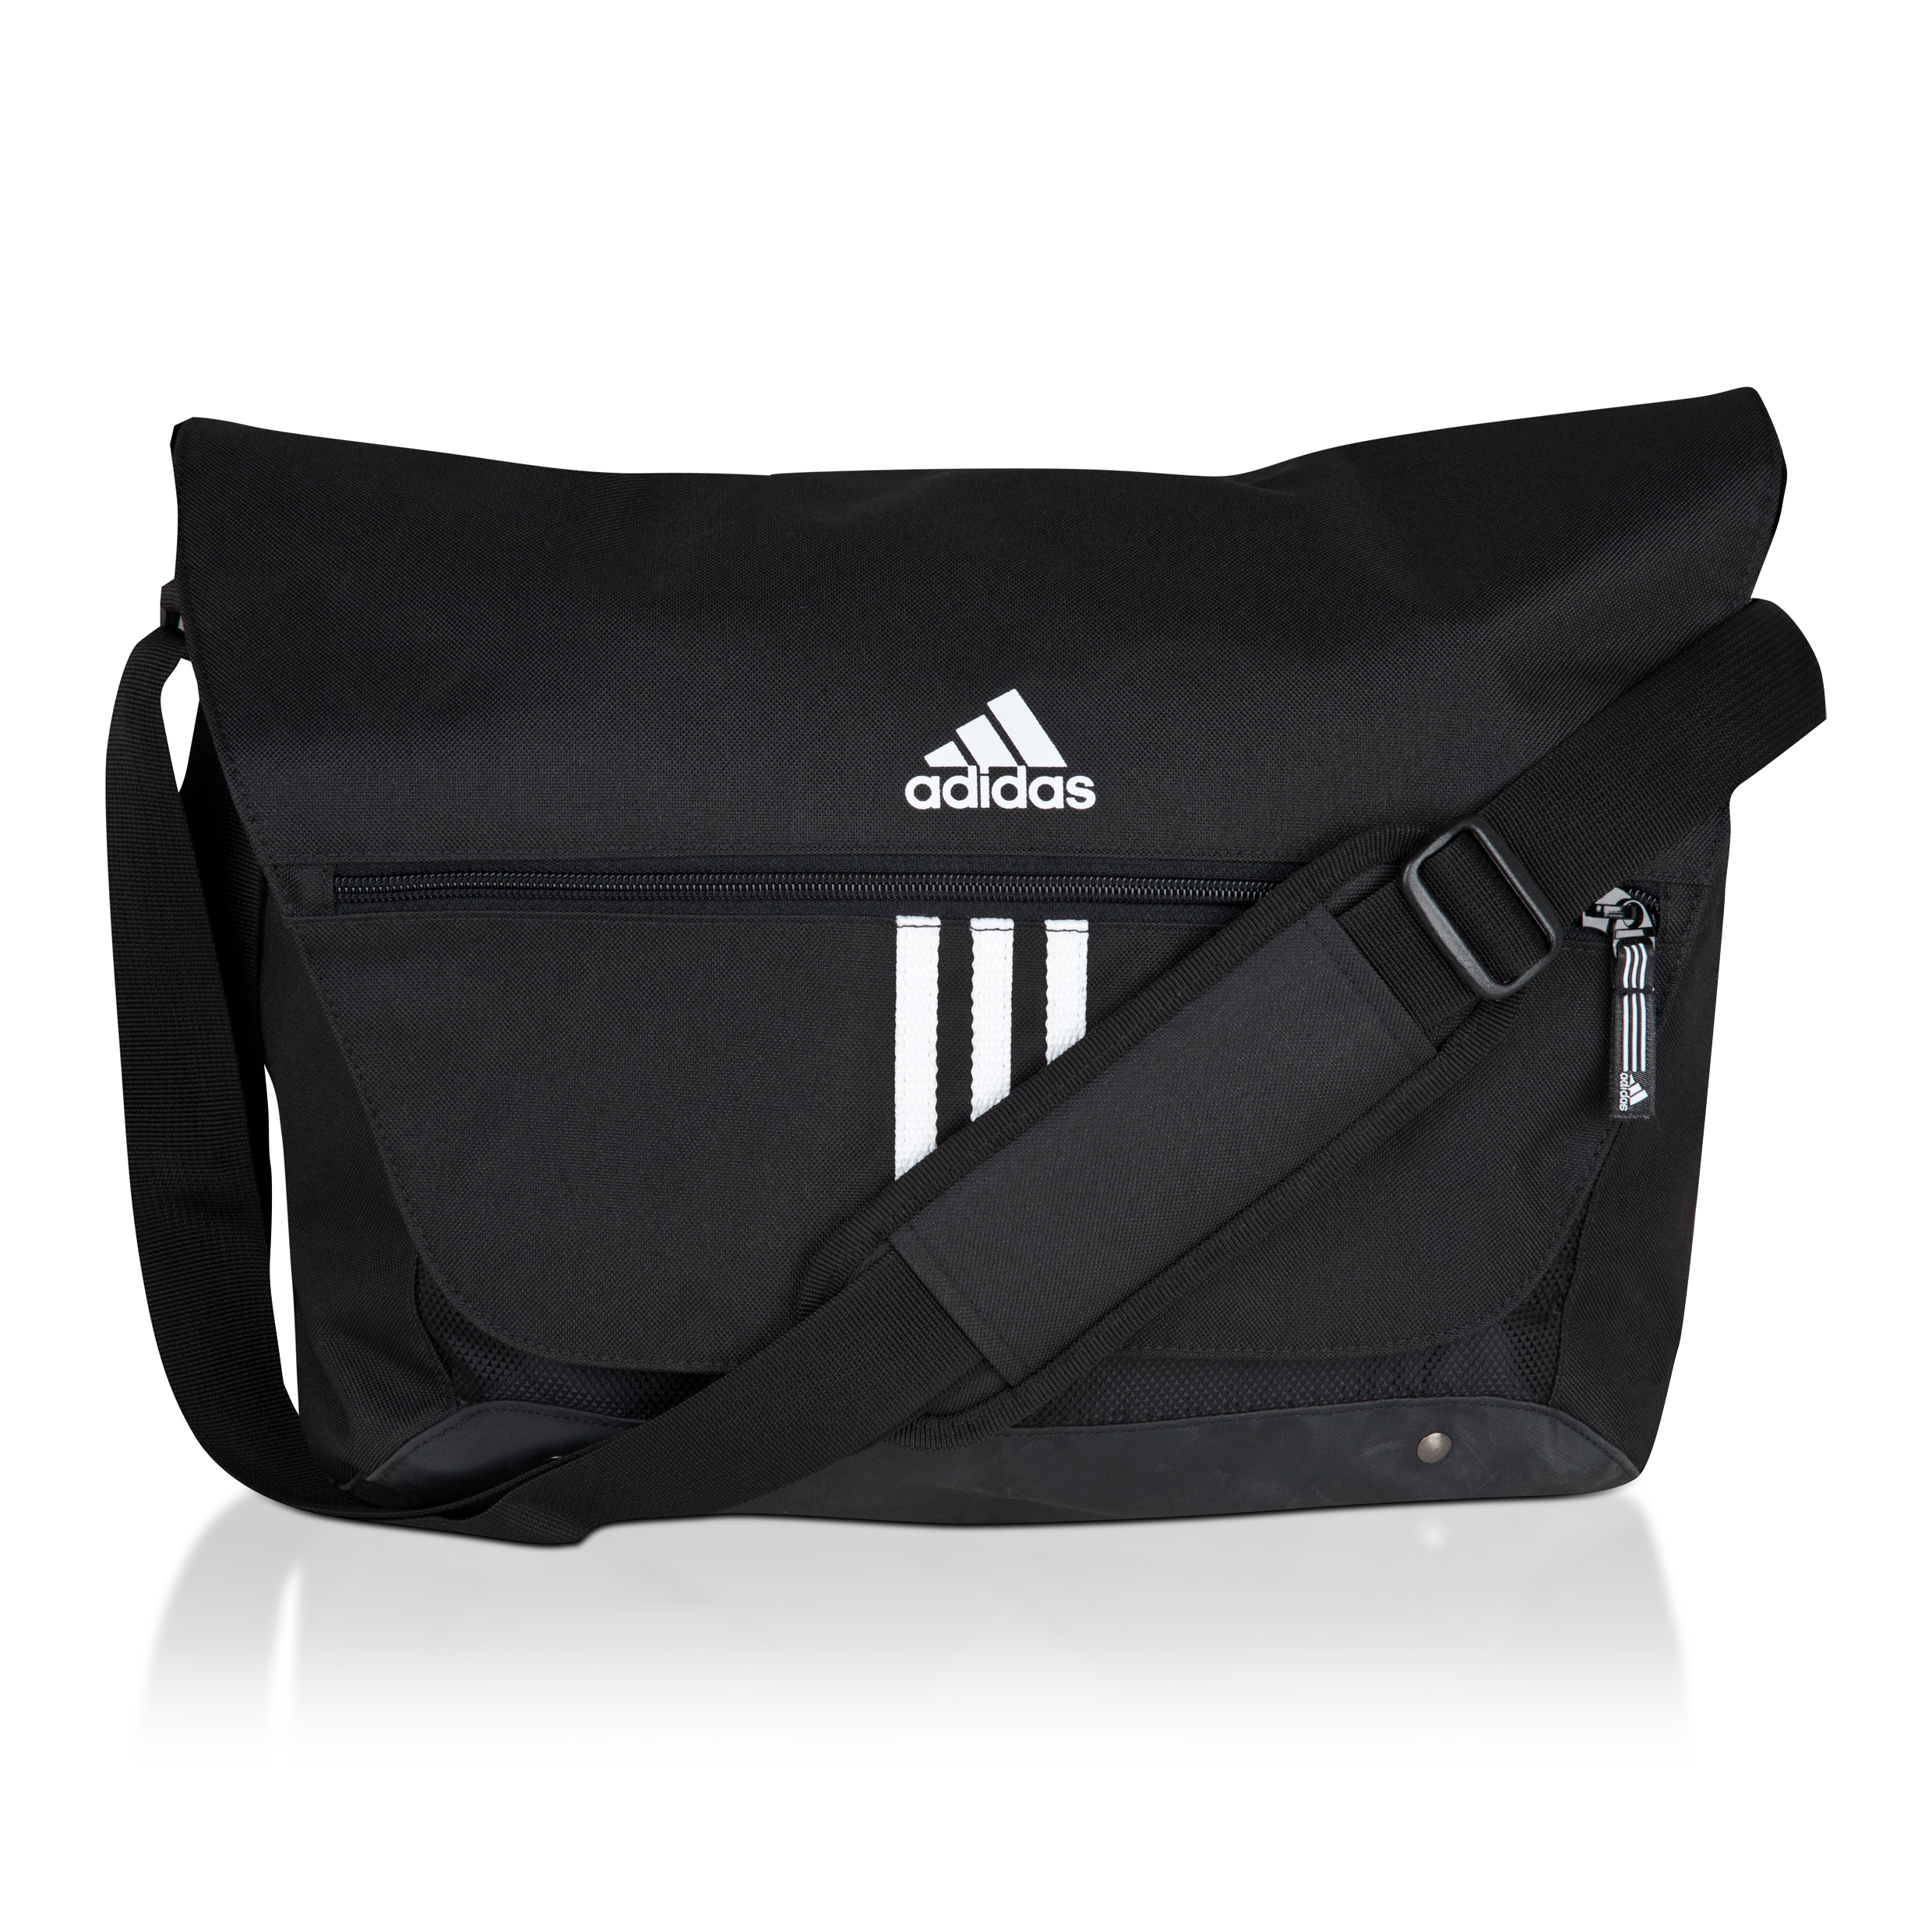 adidas 3Stripe Essentials Messenger Bag - Black/White